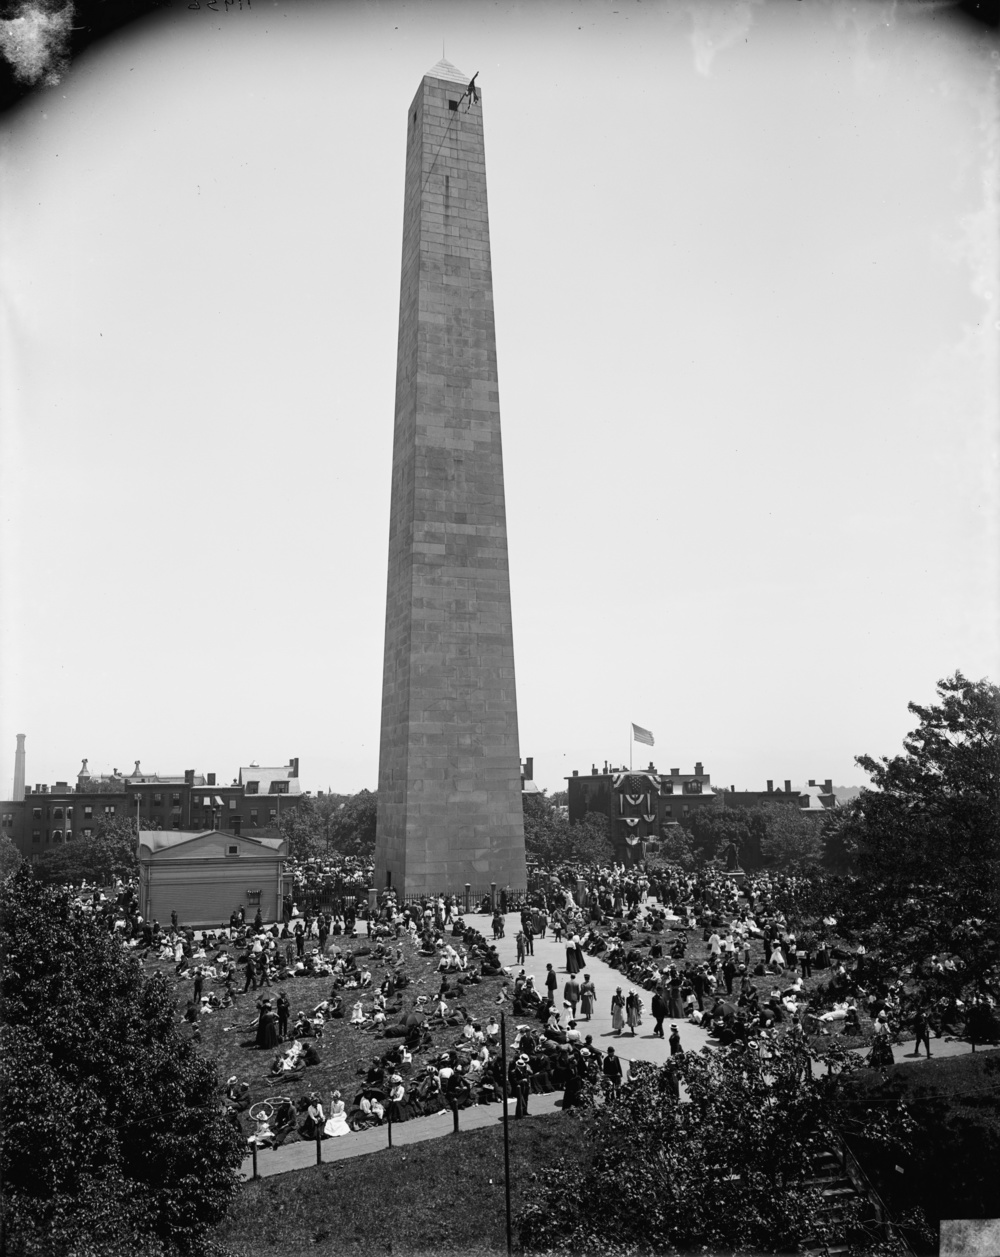 The Bunker Hill Monument during the Bunker Hill Day celebrations in Charlestown, Mass. sometime between 1890 and 1901. Image from  Wikimedia .